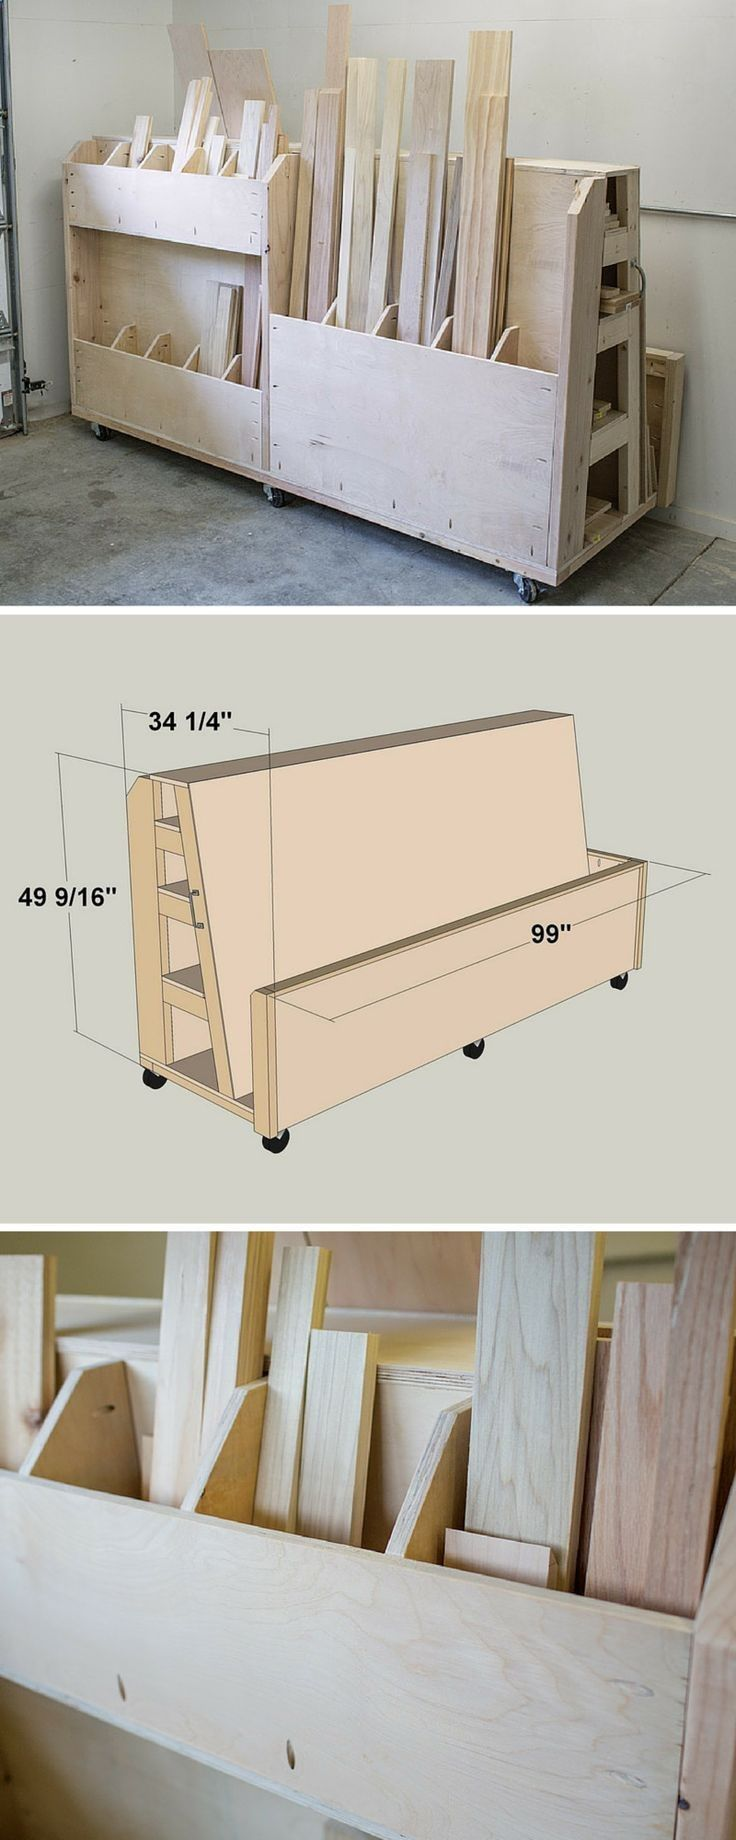 Wood Profits - Finding a place to store lumber and sheet goods can be challenging. This lumber cart keeps them all organized with shelves to store long boards, upright bins for shorter pieces, and a large area to hold sheet goods. Plus, the cart rolls, so you can push it wherever you need to in your work space. Get the free DIY plans at buildsomething.com Discover How You Can Start A Woodworking Business From Home Easily in 7 Days With NO Capital Needed!